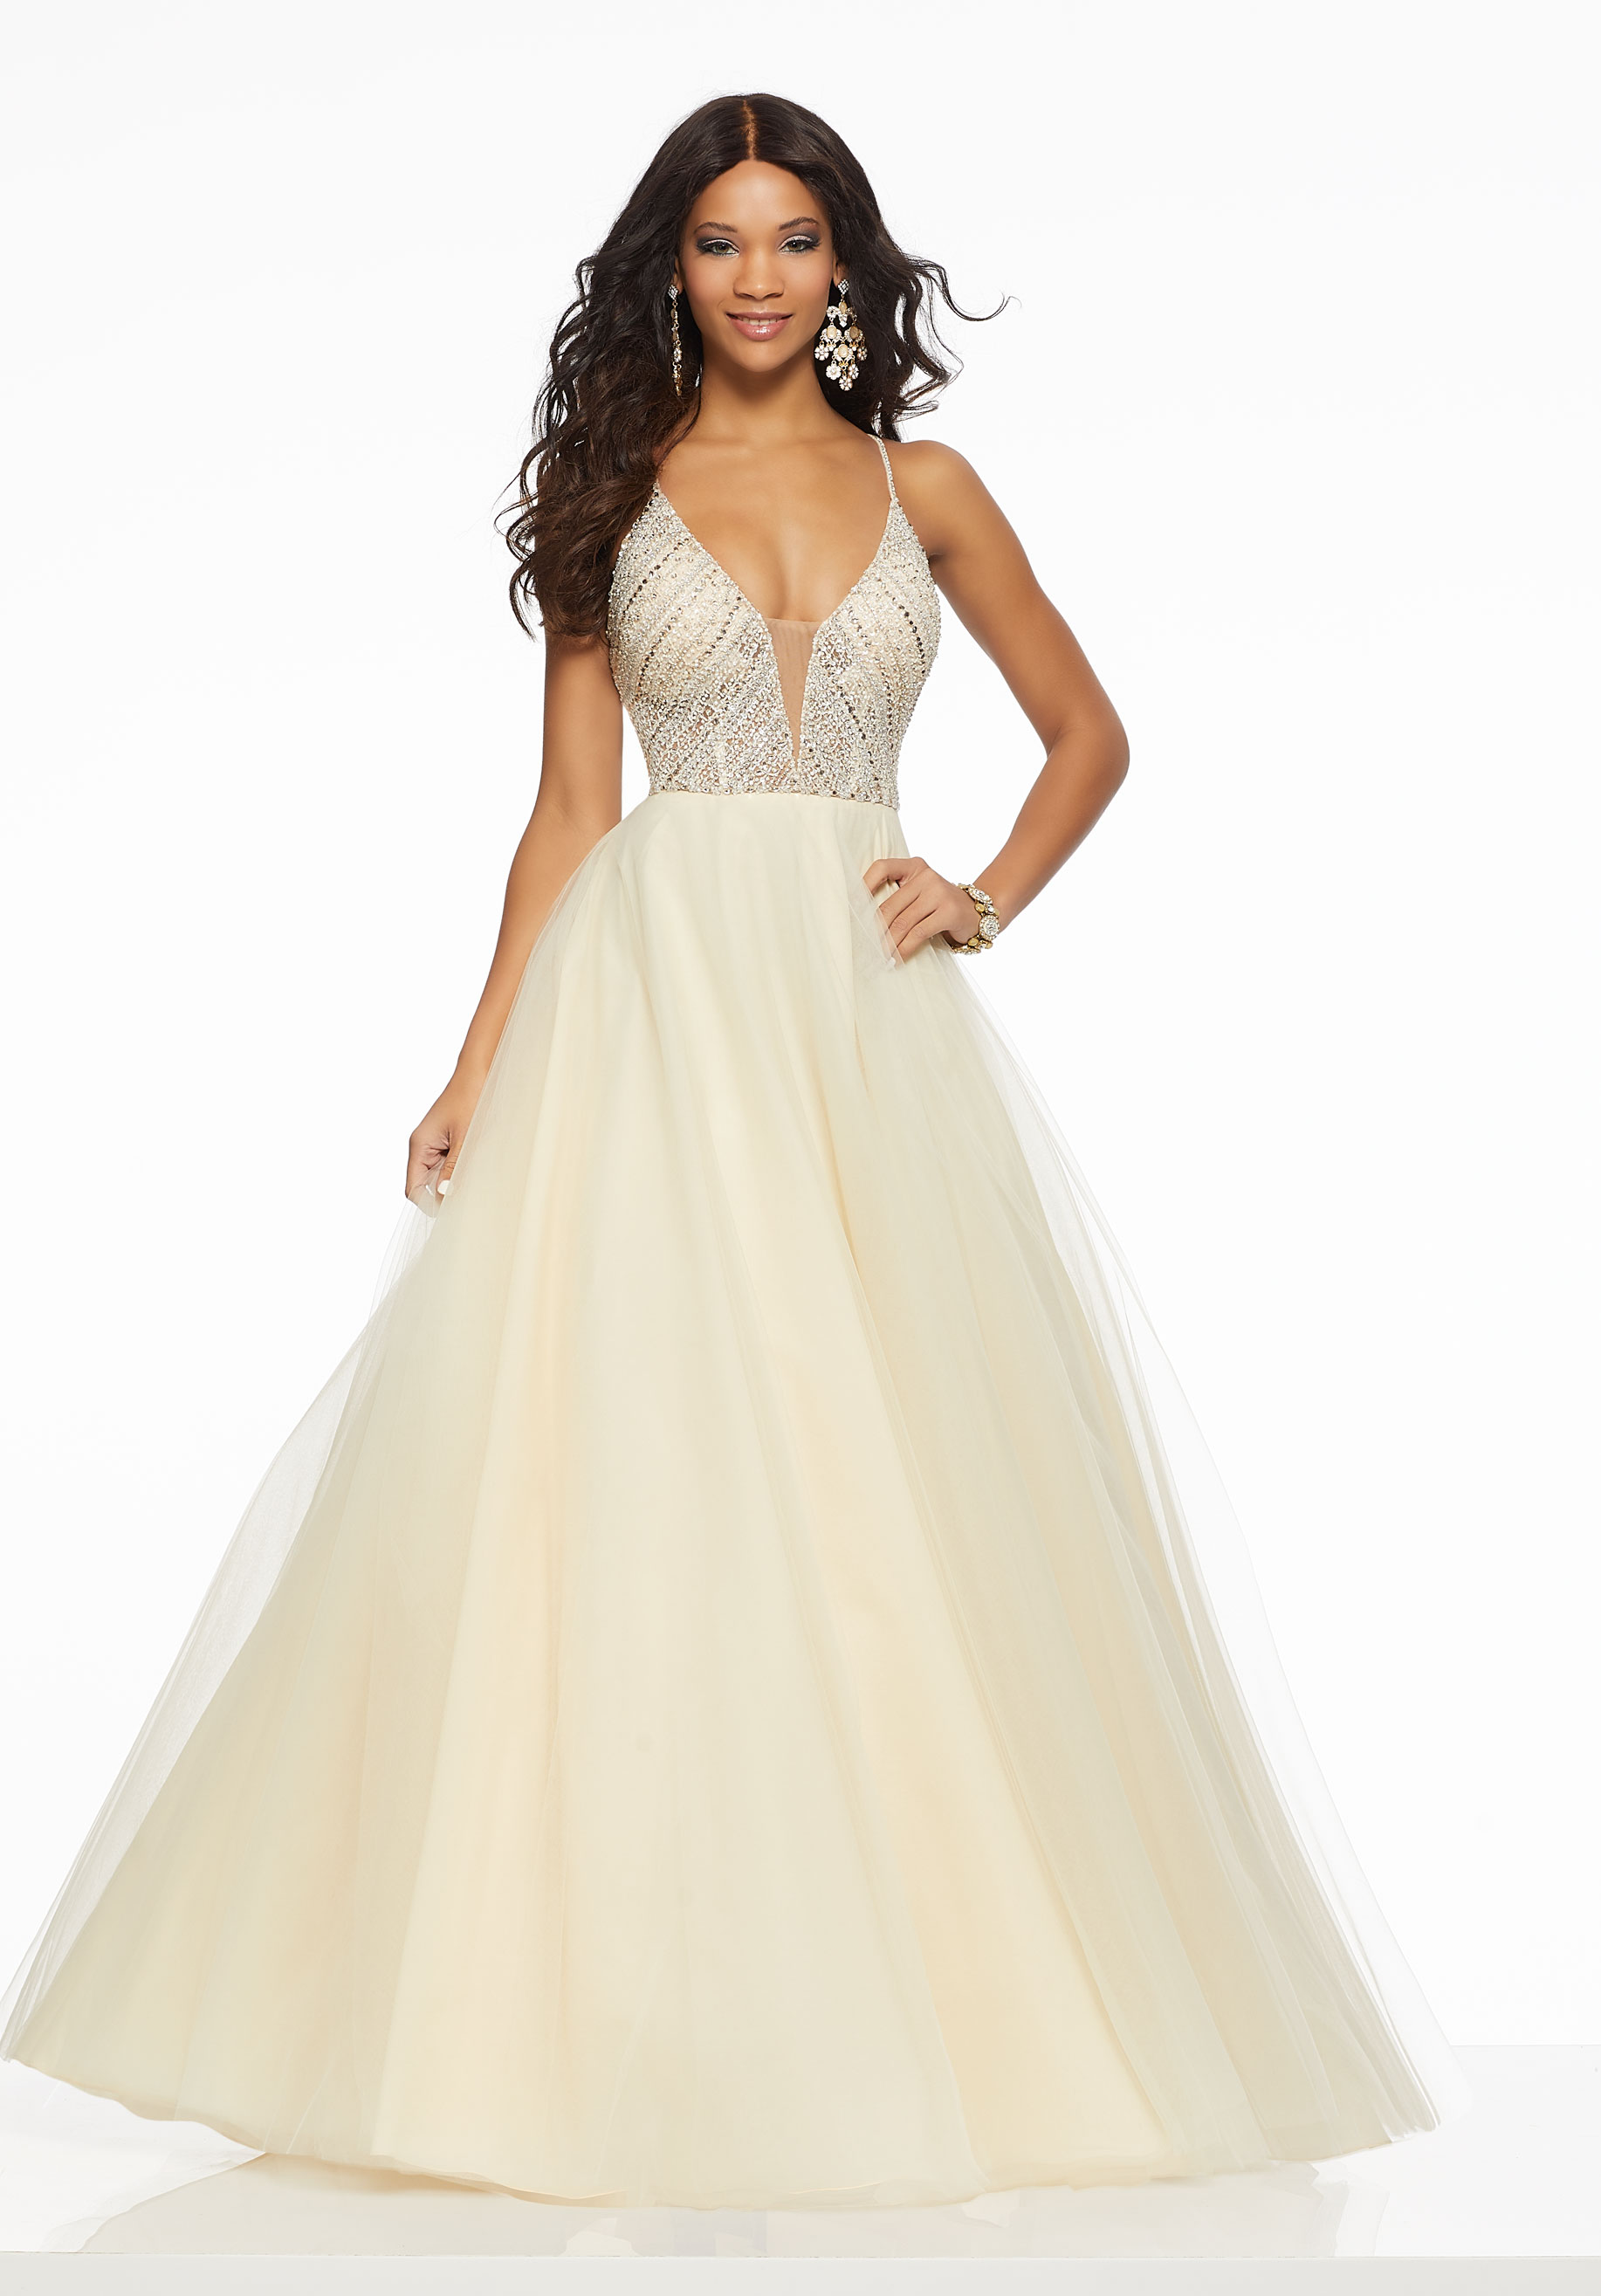 e84c8081494 Prom Dresses Archives - Colins BridalColins Bridal